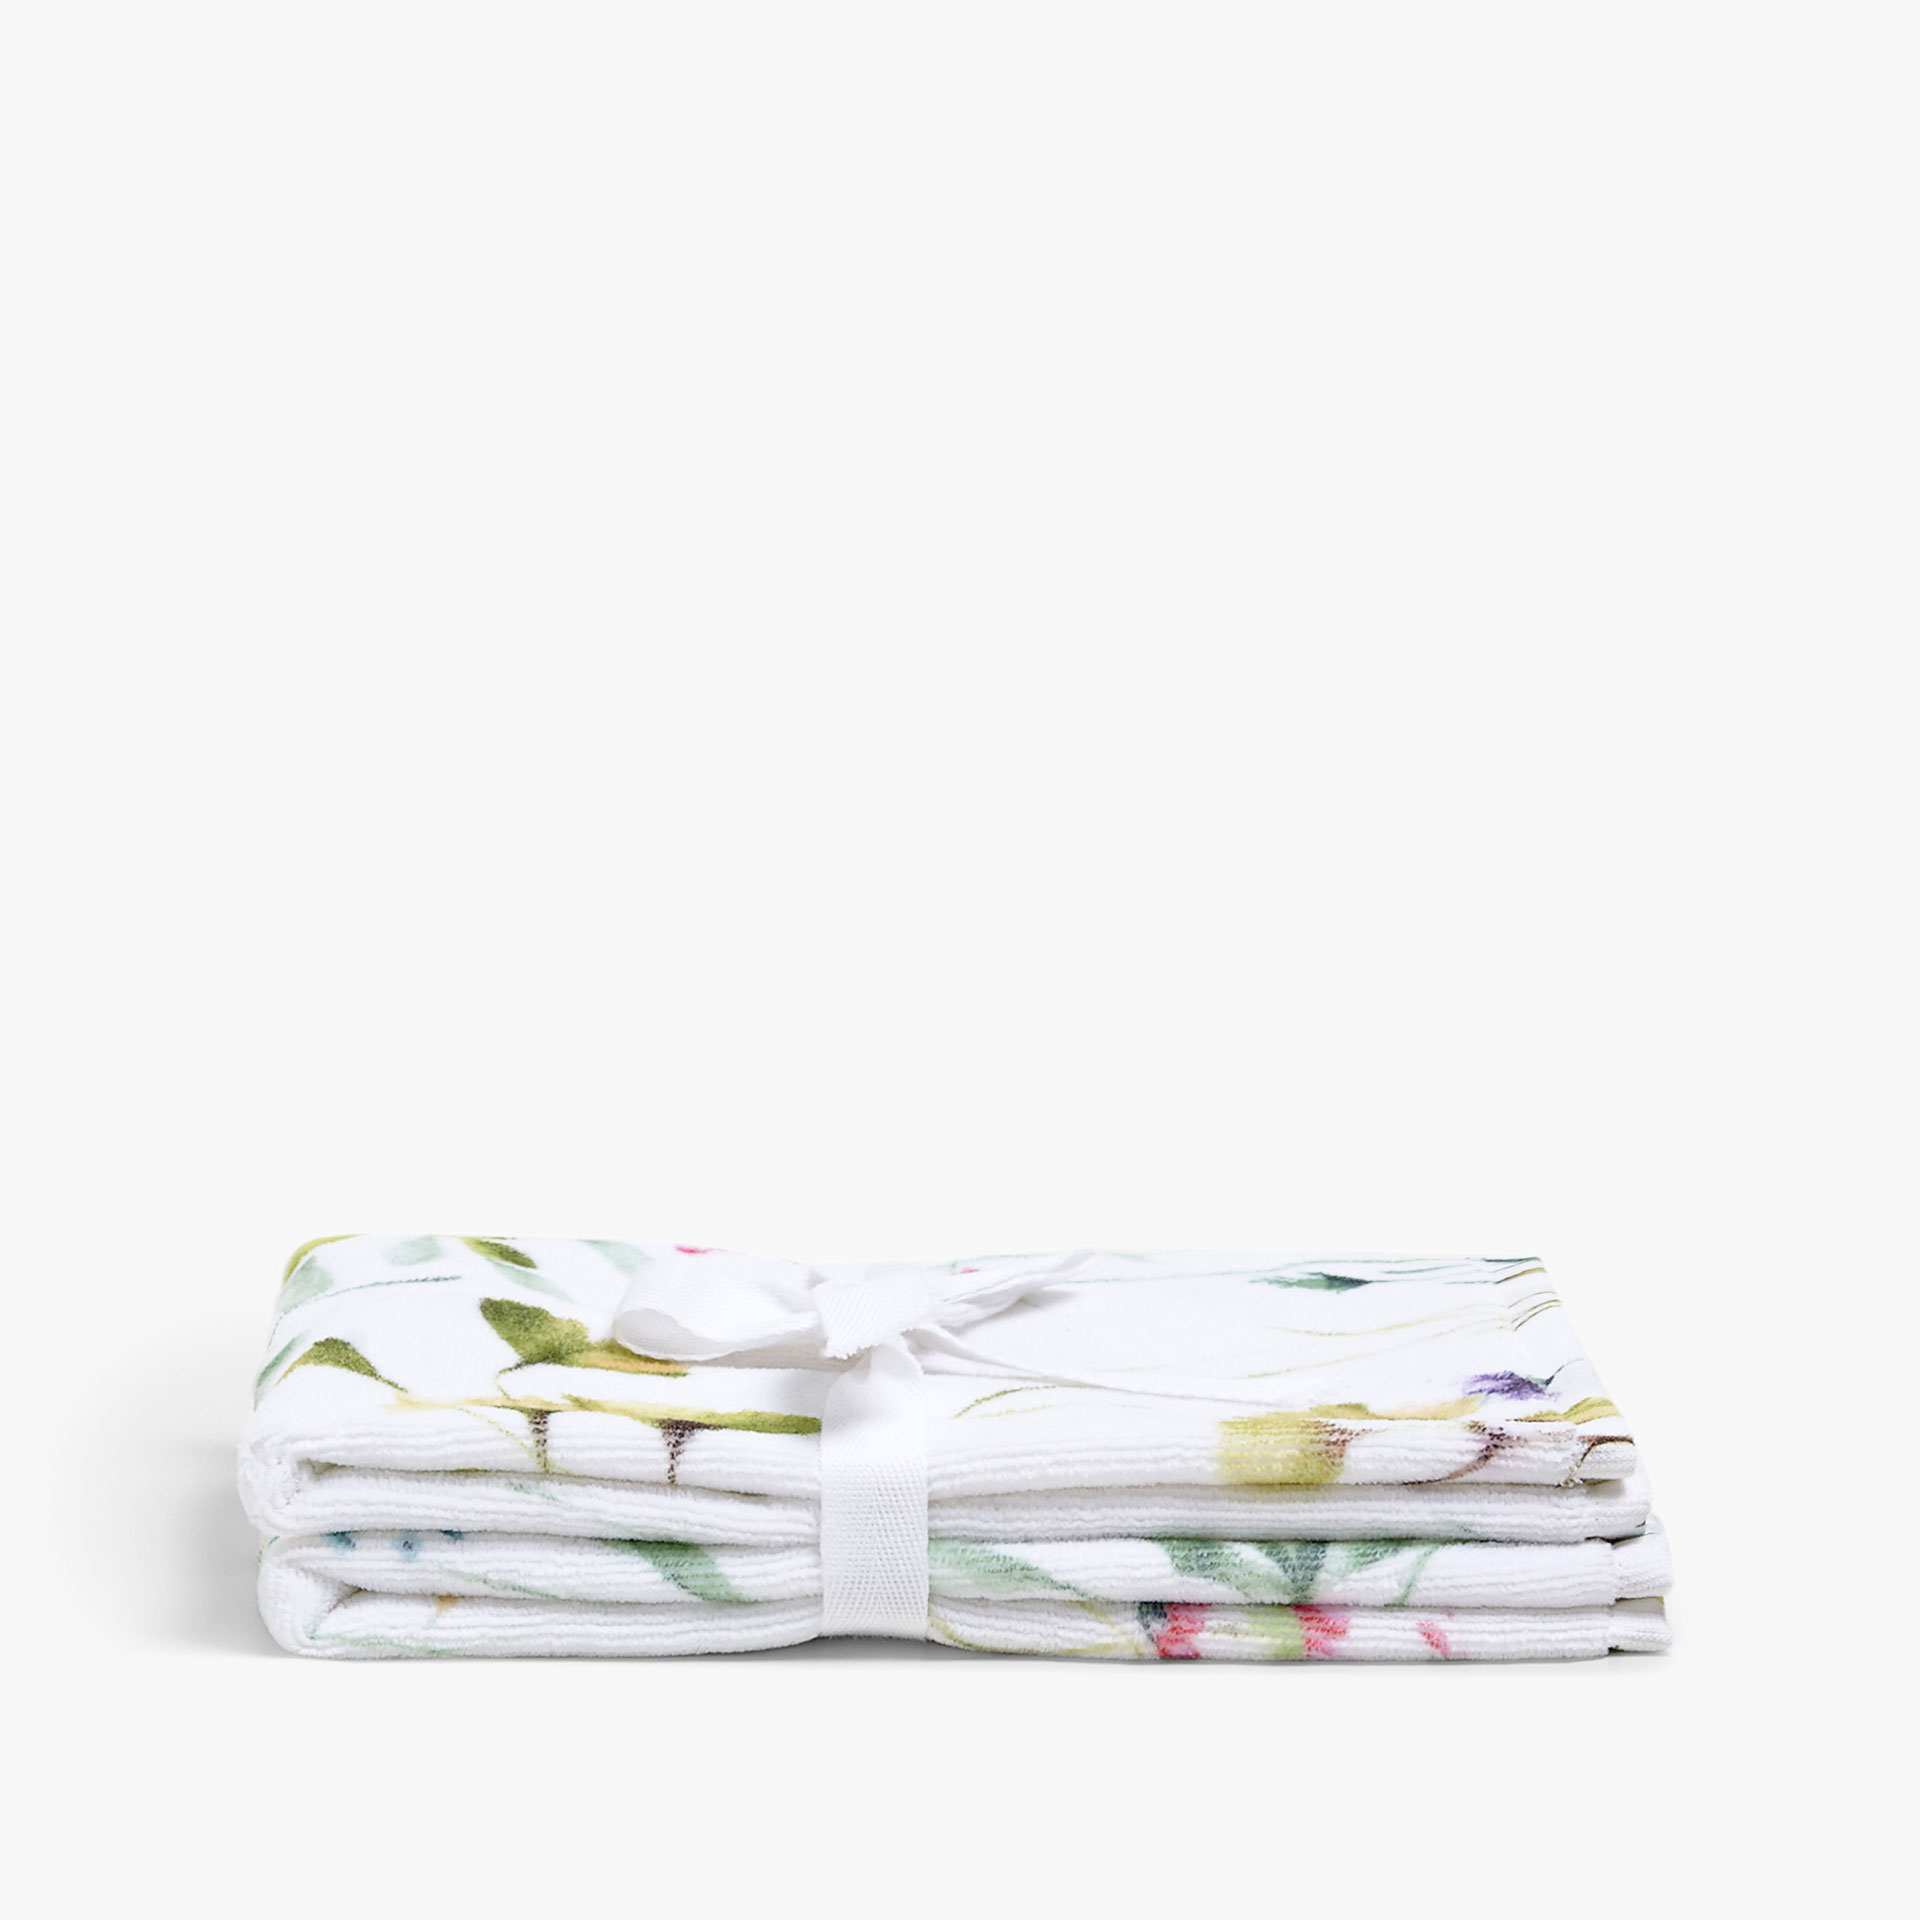 FLORAL PRINT COTTON TOWEL (SET OF 2)